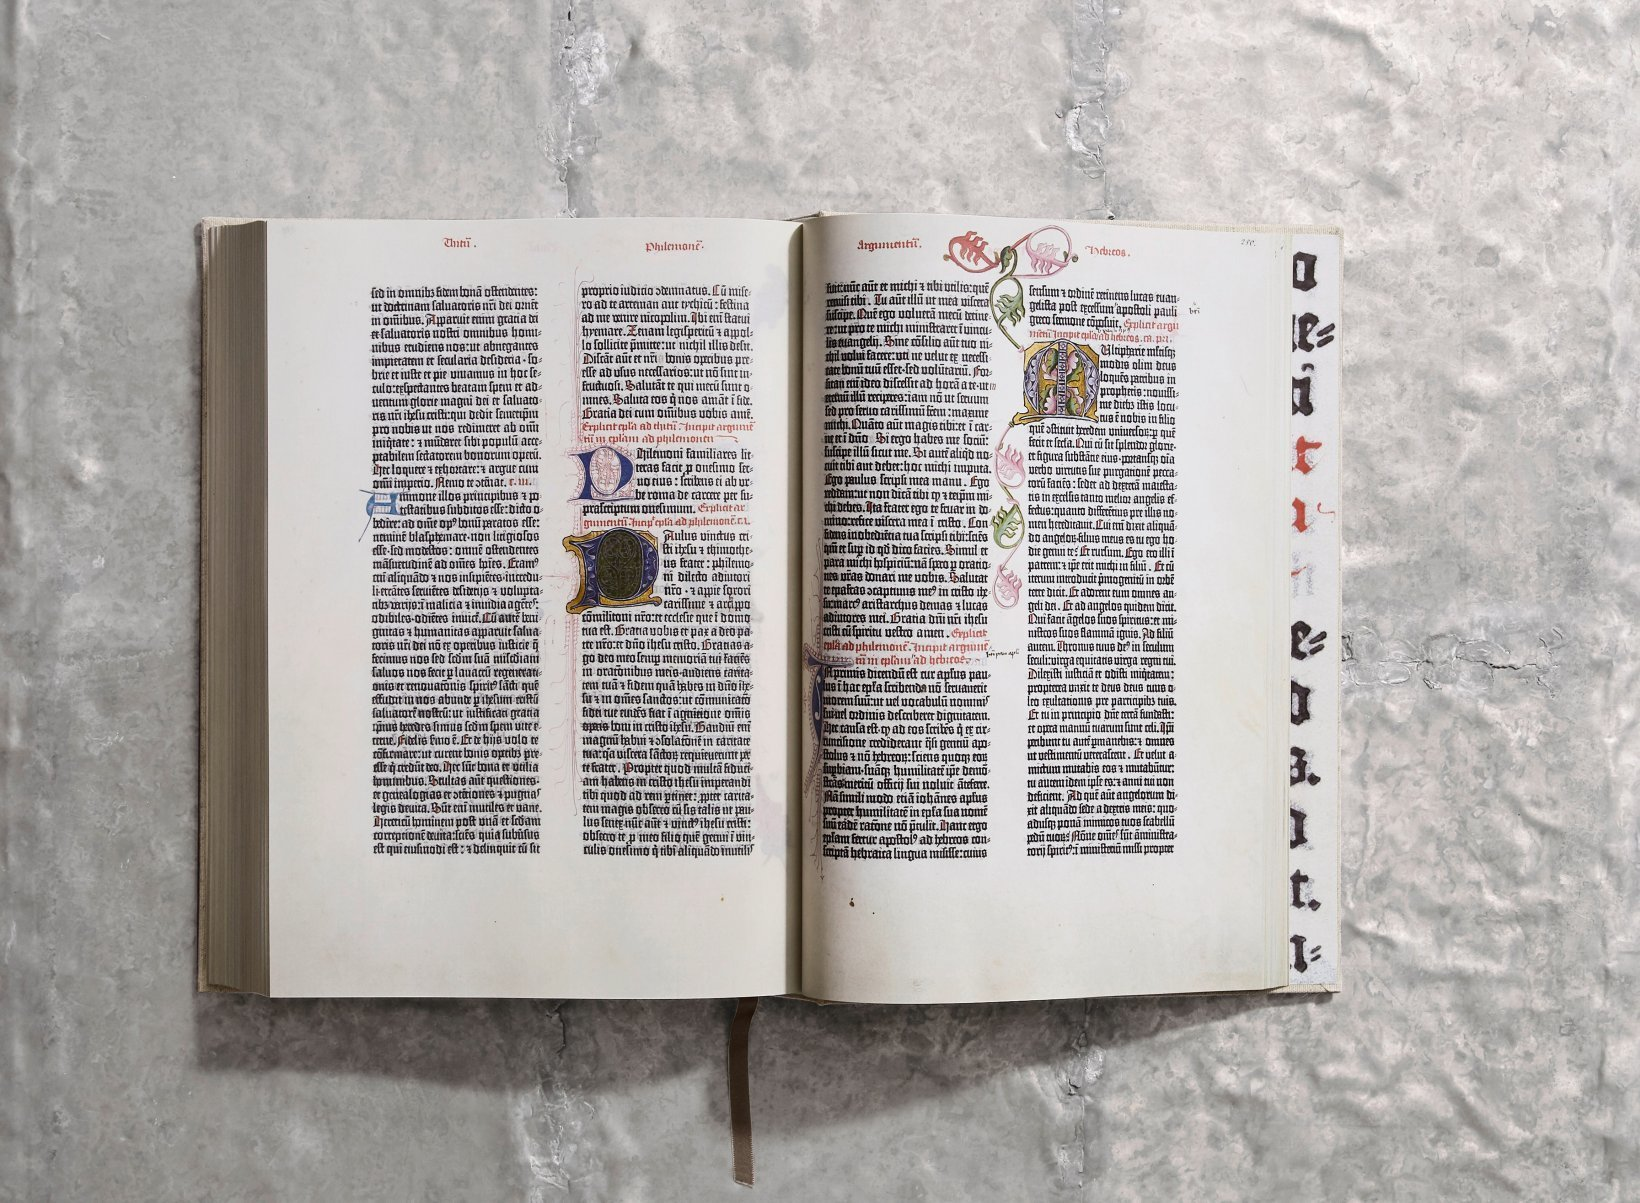 ... The Gutenberg Bible of 1454 - image 13 ...